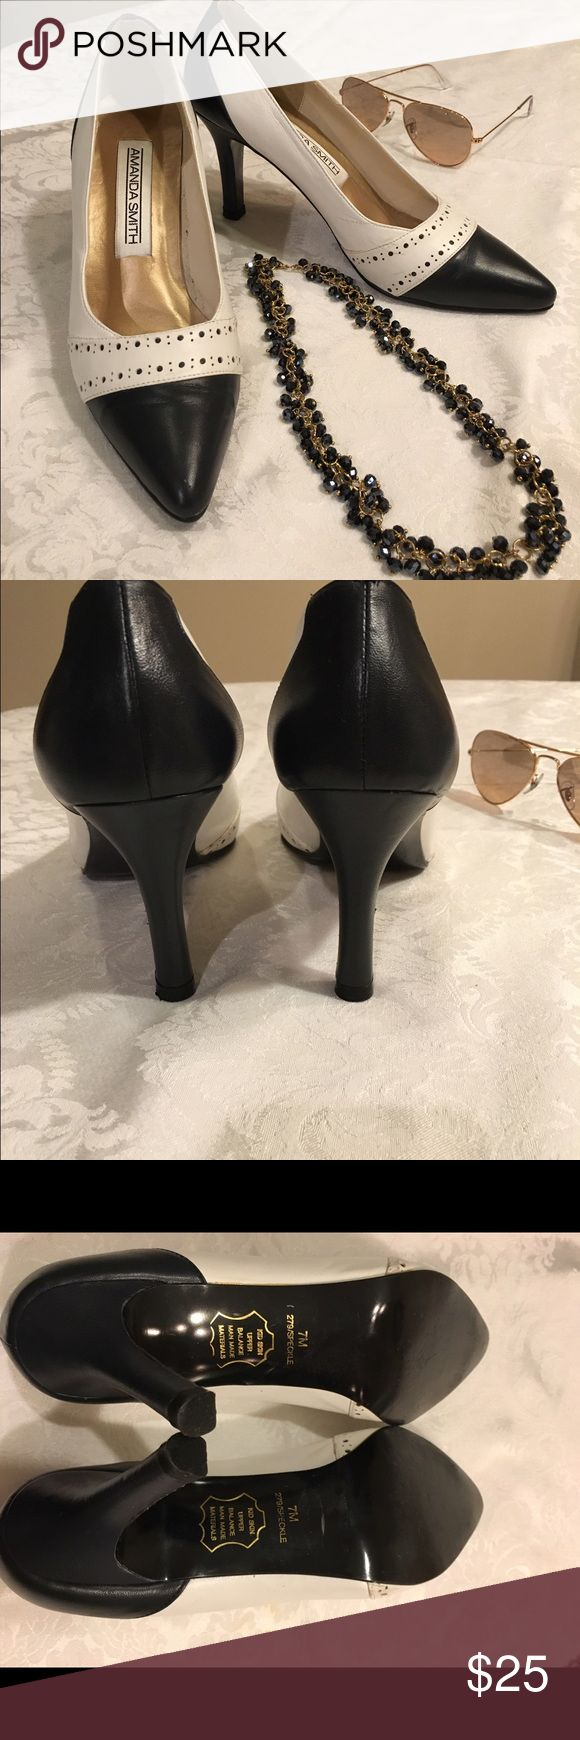 "Amanda Smith Spectator Shoes 👠 Amanda Smith Spectator Shoes, two -toned, navy and white. 3 1/4"" heel.  Great condition. Kid skin leather/upper. Amanda Smith Shoes Heels"